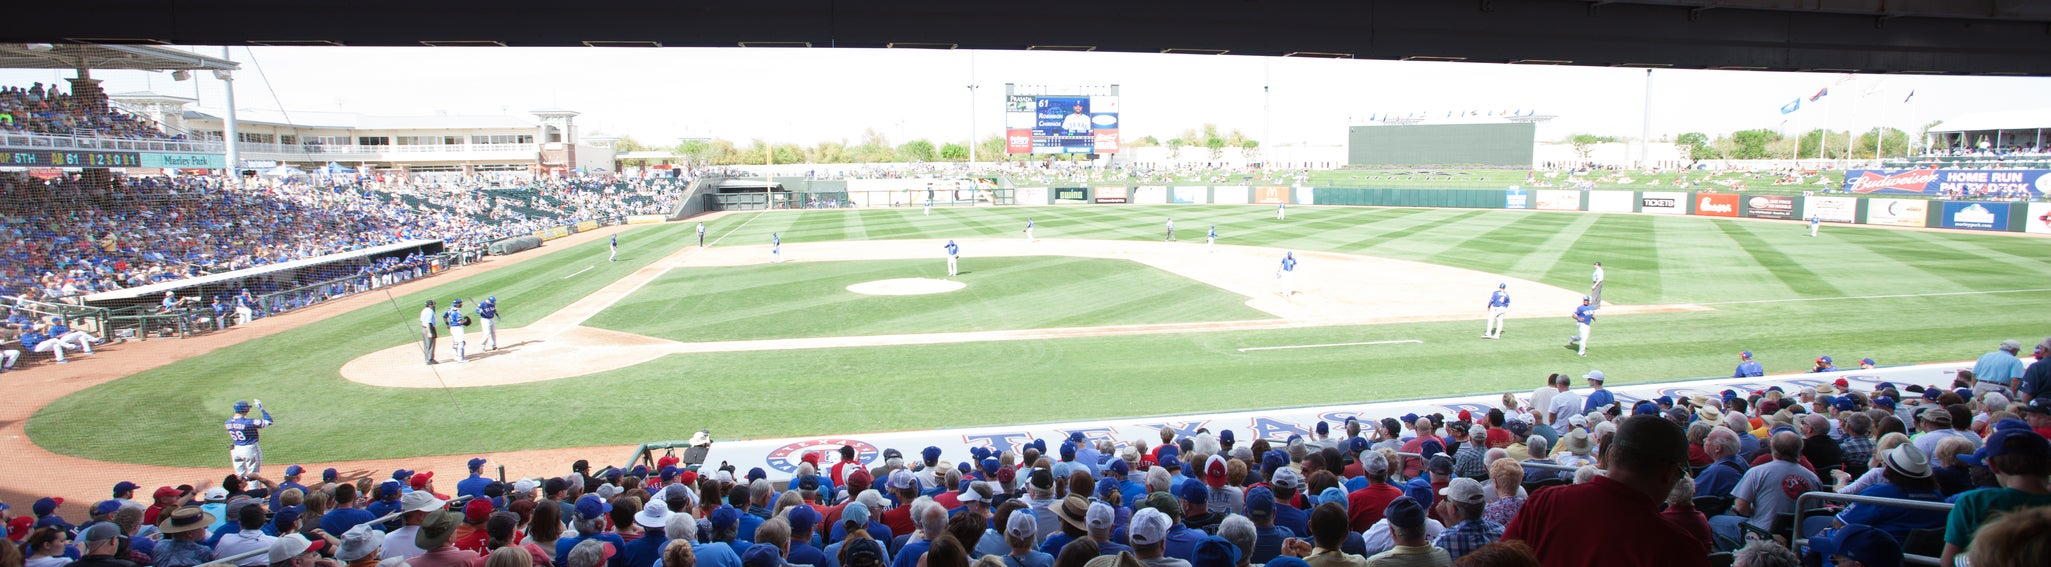 Seat view from Lower Dugout